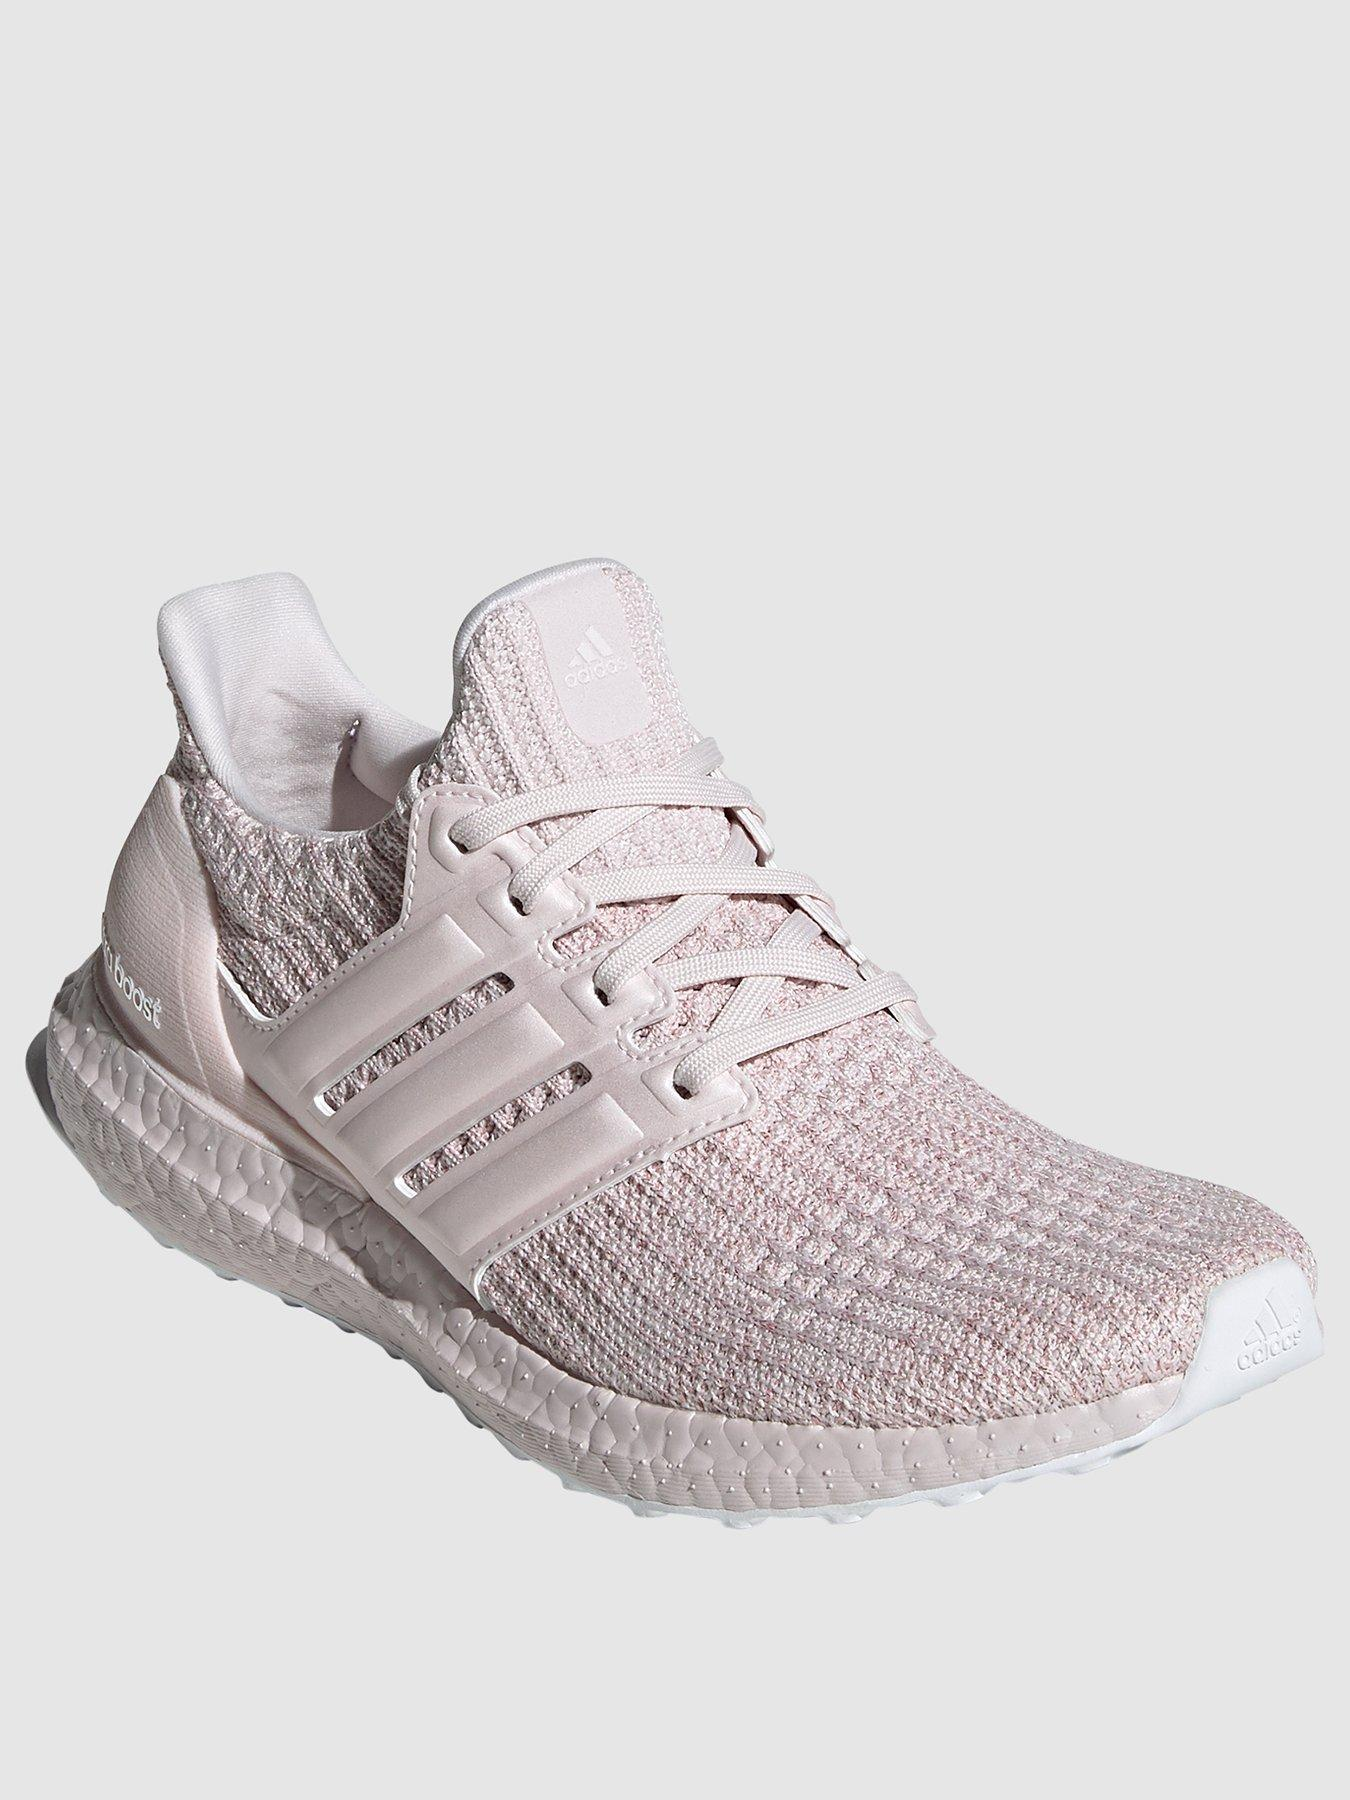 Sports Littlewoods Trainers Women's ShoesRunnersamp; Women's Sports ShoesRunnersamp; cj3ARLqS54